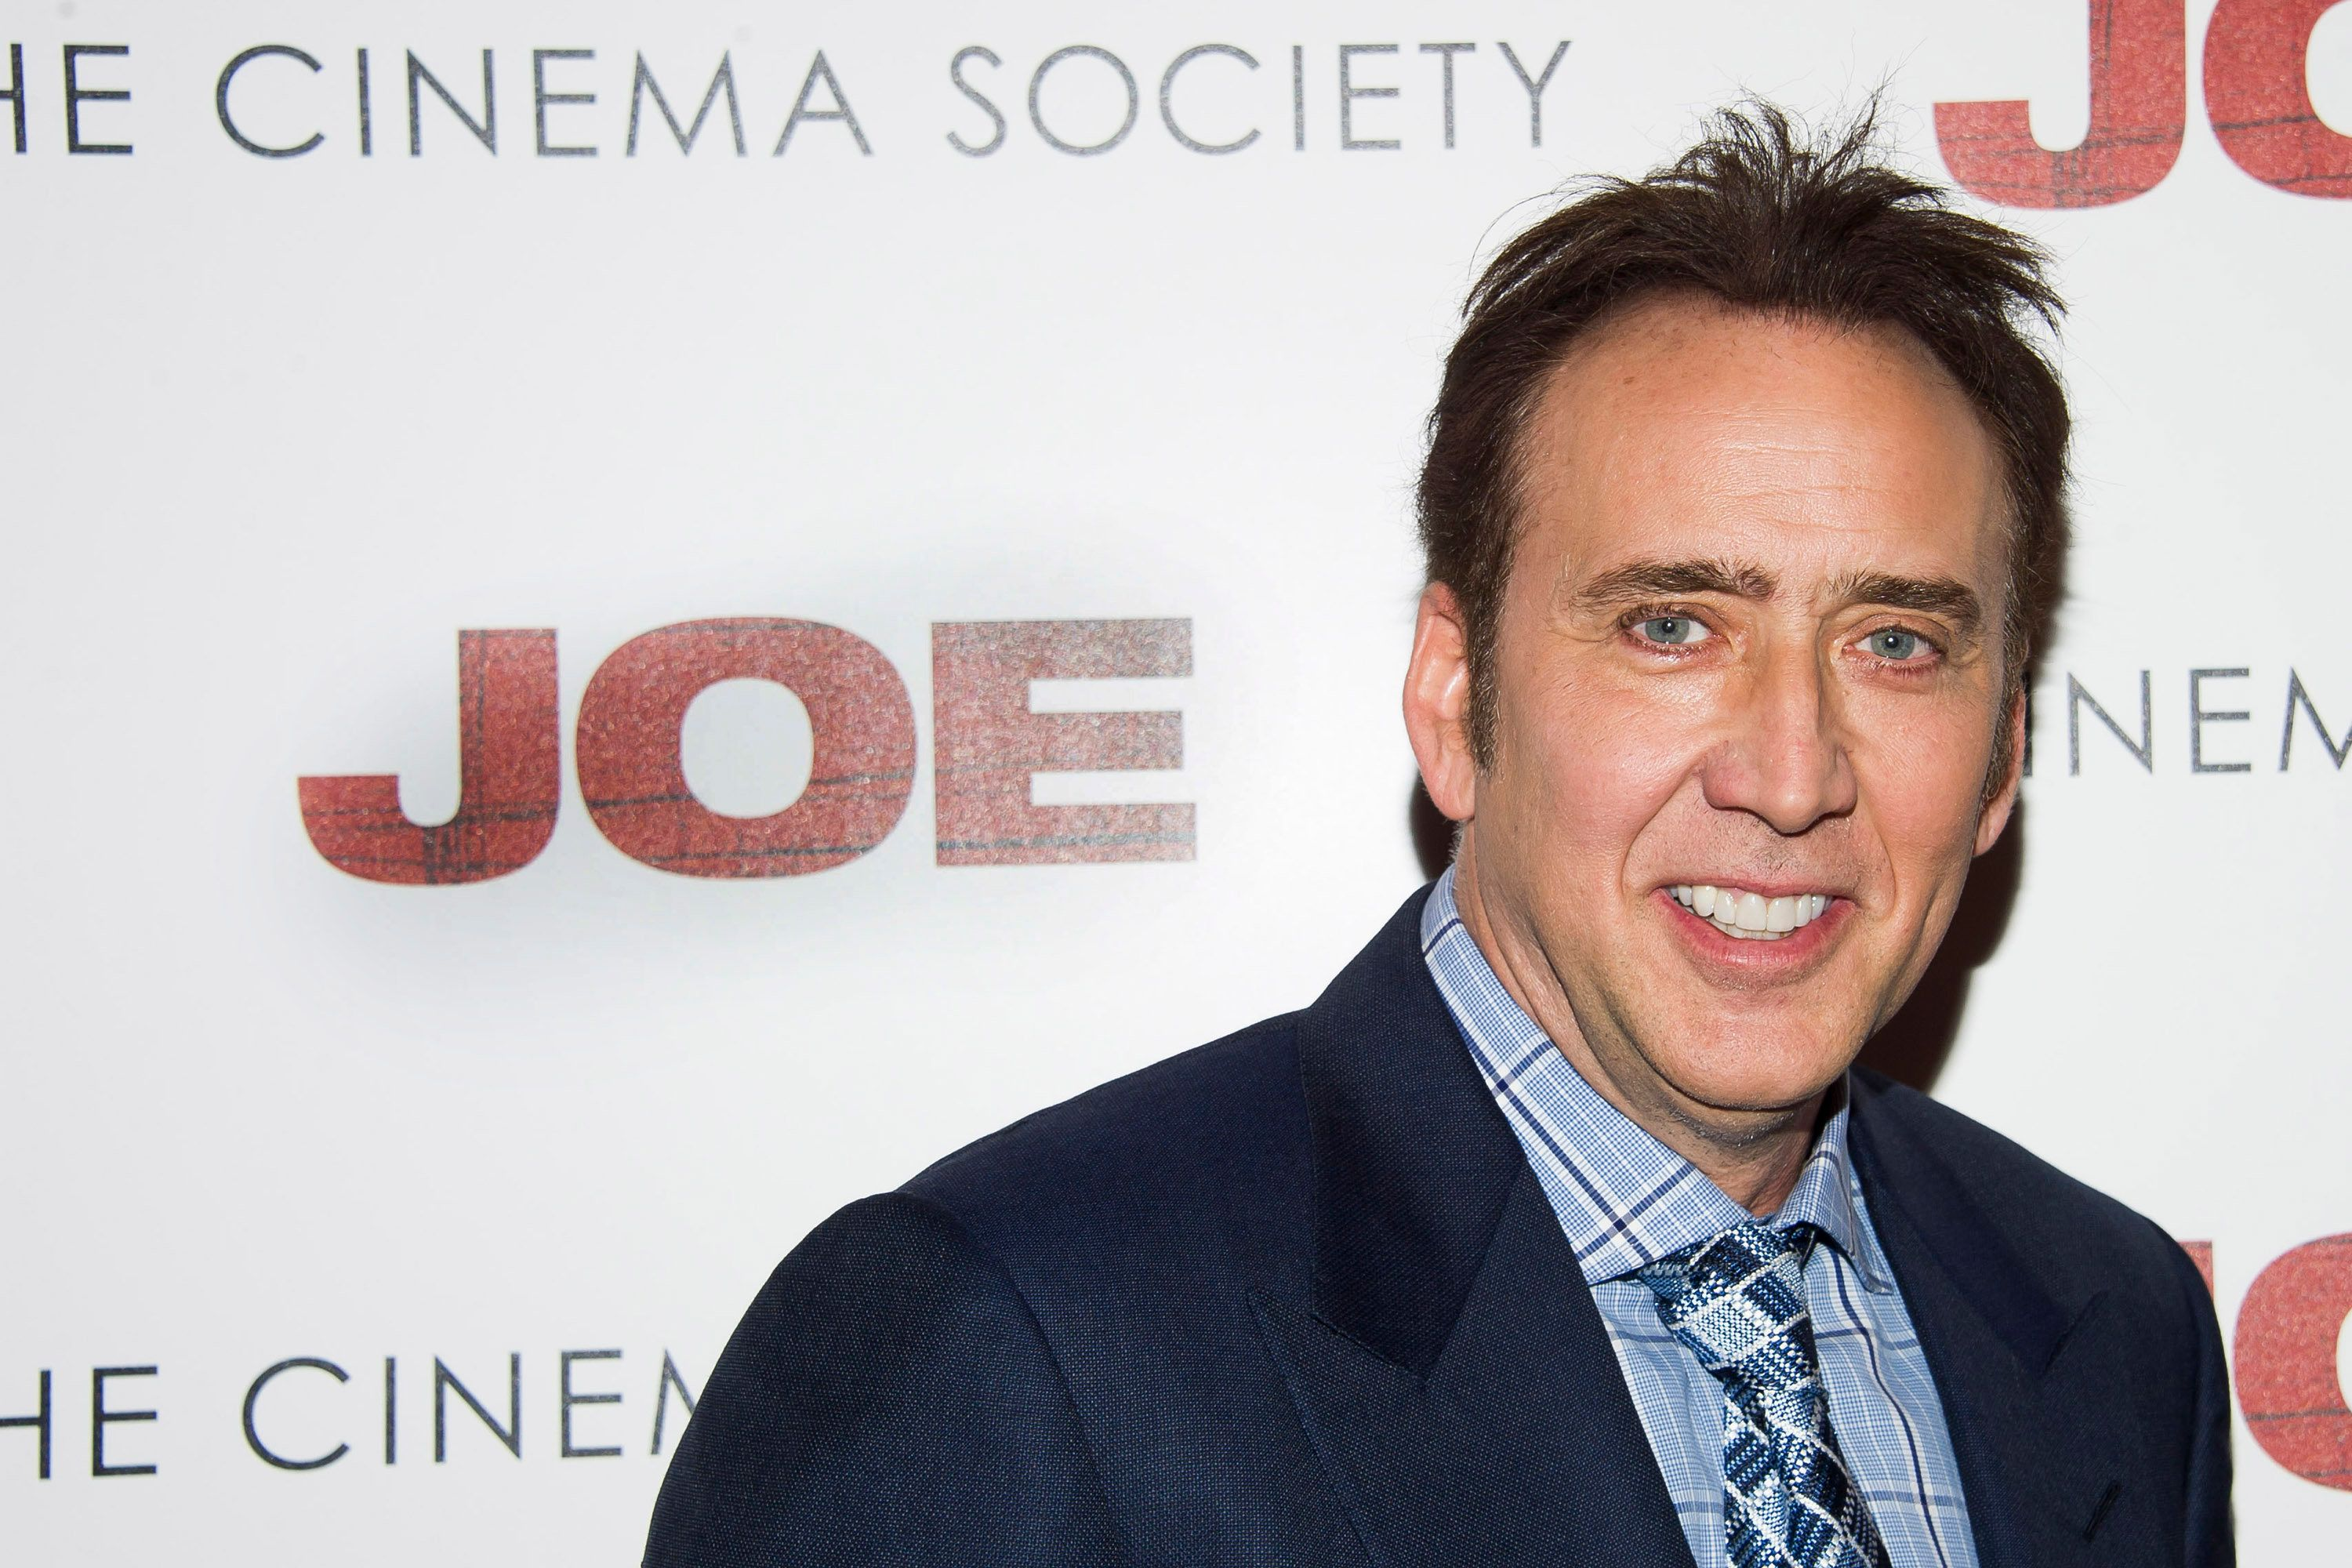 """Nicolas Cage arrives for the """"Joe"""" premiere hosted by Lionsgate and The Cinema Society on Wednesday, April 9, 2014, in New York. (Photo by Charles Sykes/Invision/AP)"""